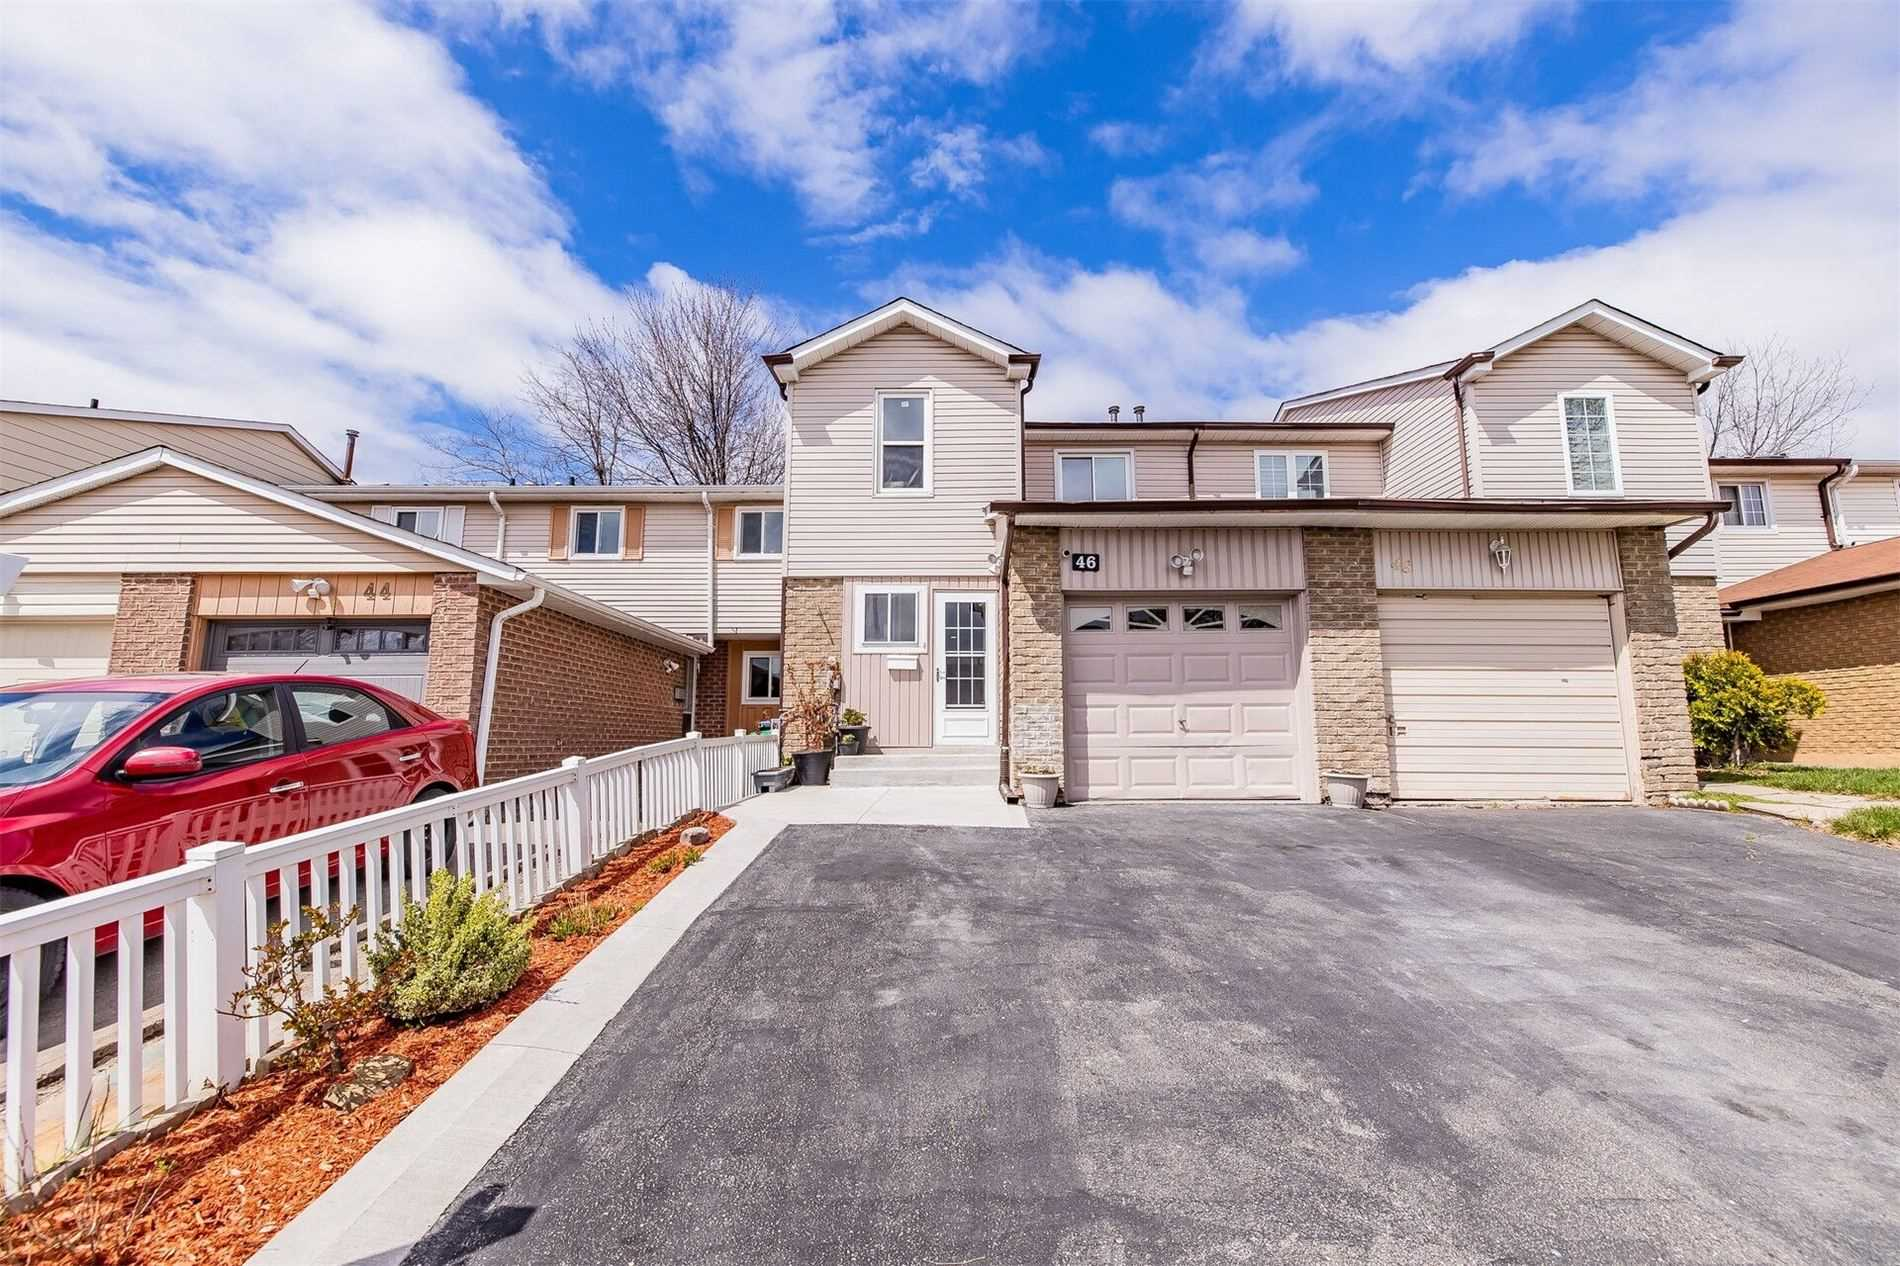 46 Gilmore Dr